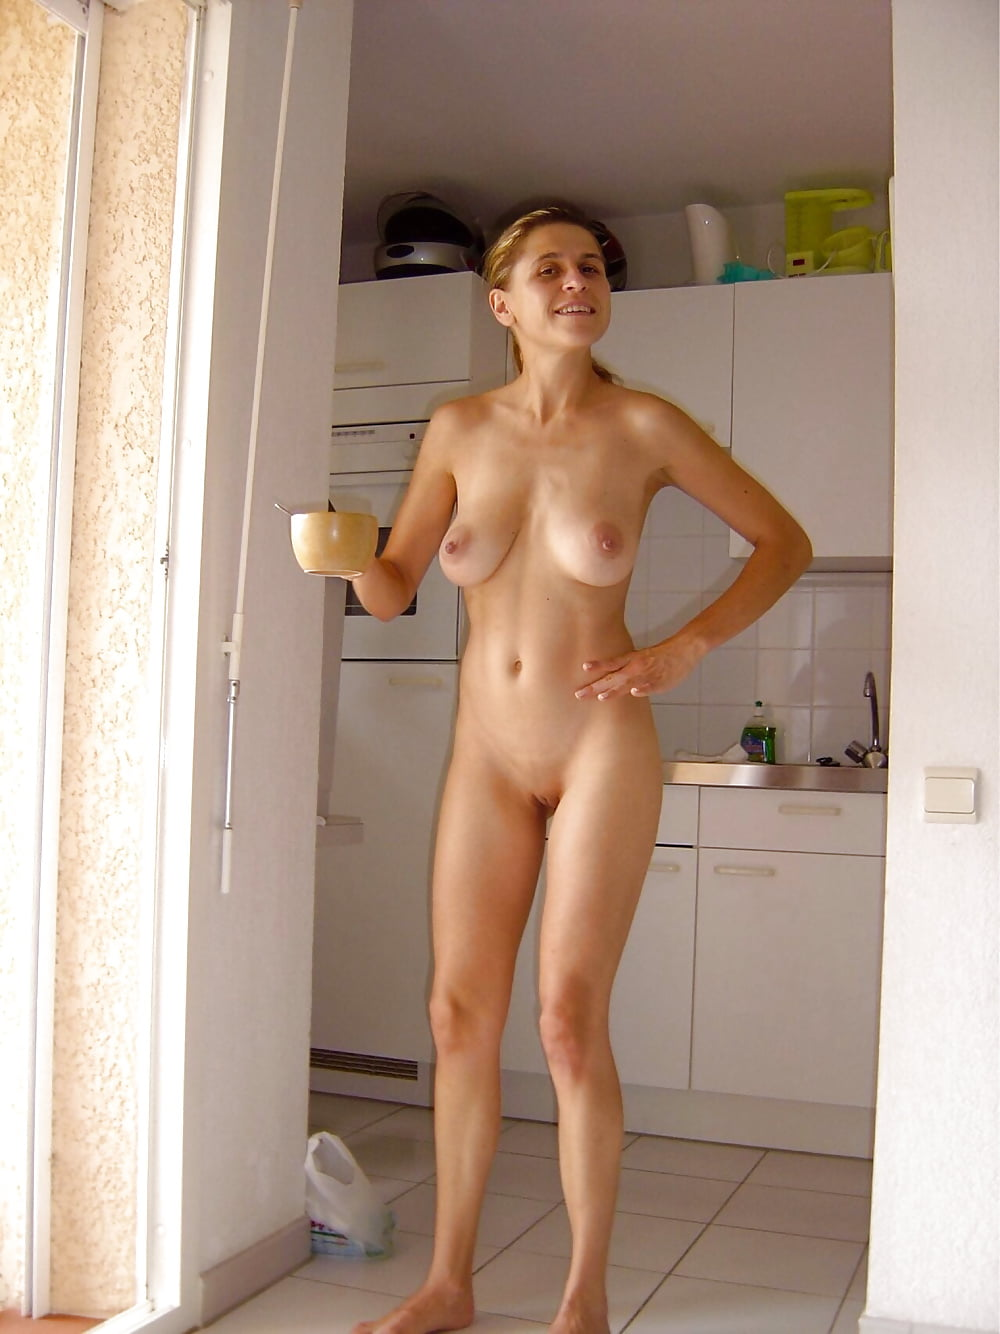 Little Young Slim Girls Nude